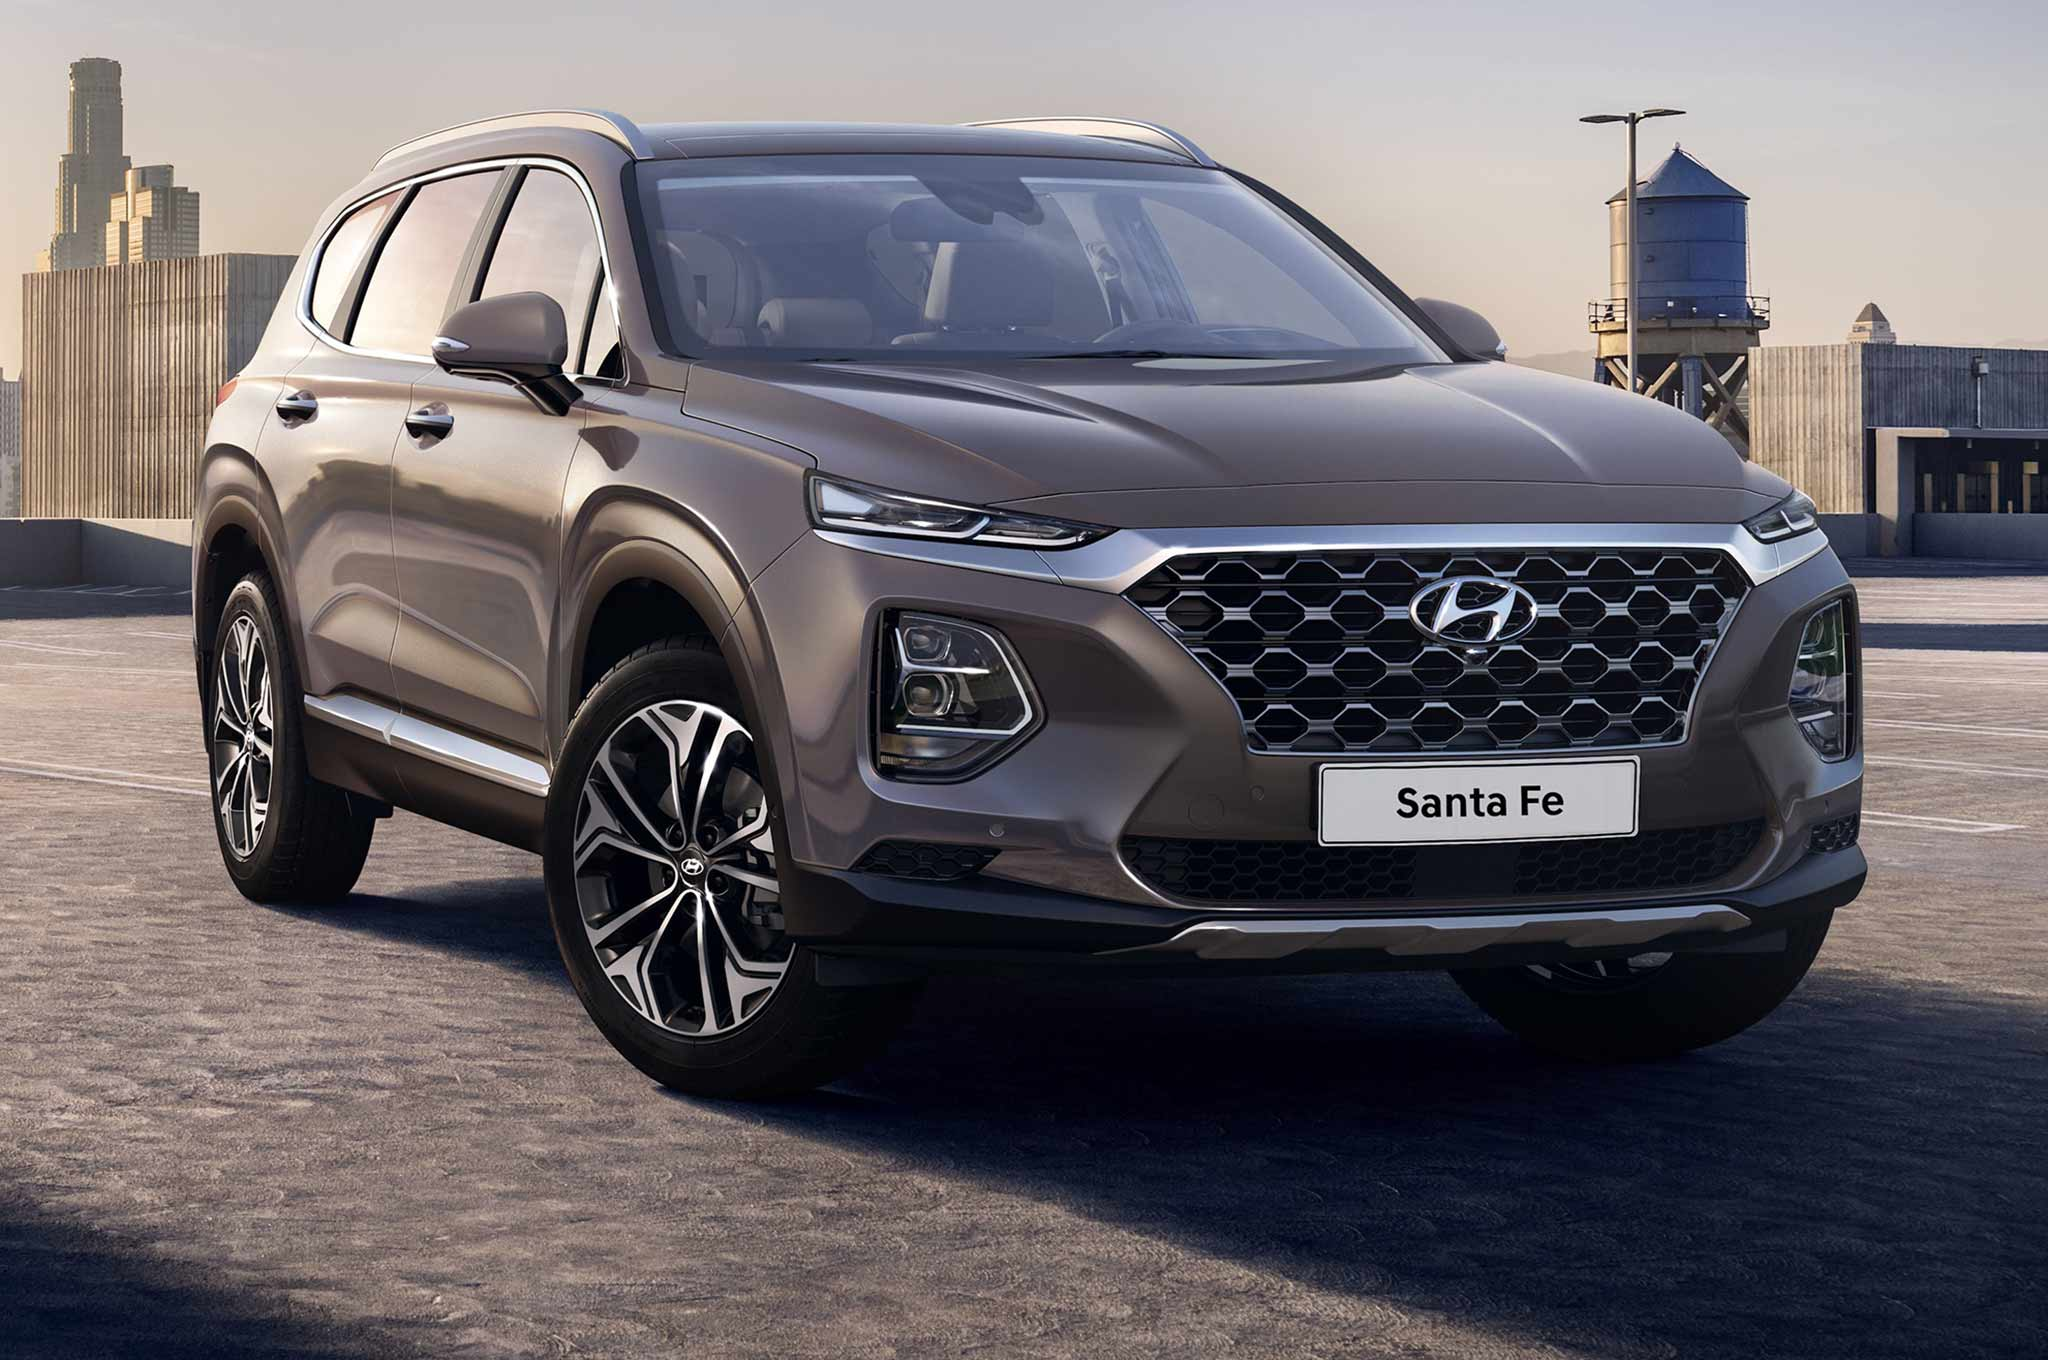 2019 Hyundai Santa Fe Korean Market Front Three Quarter